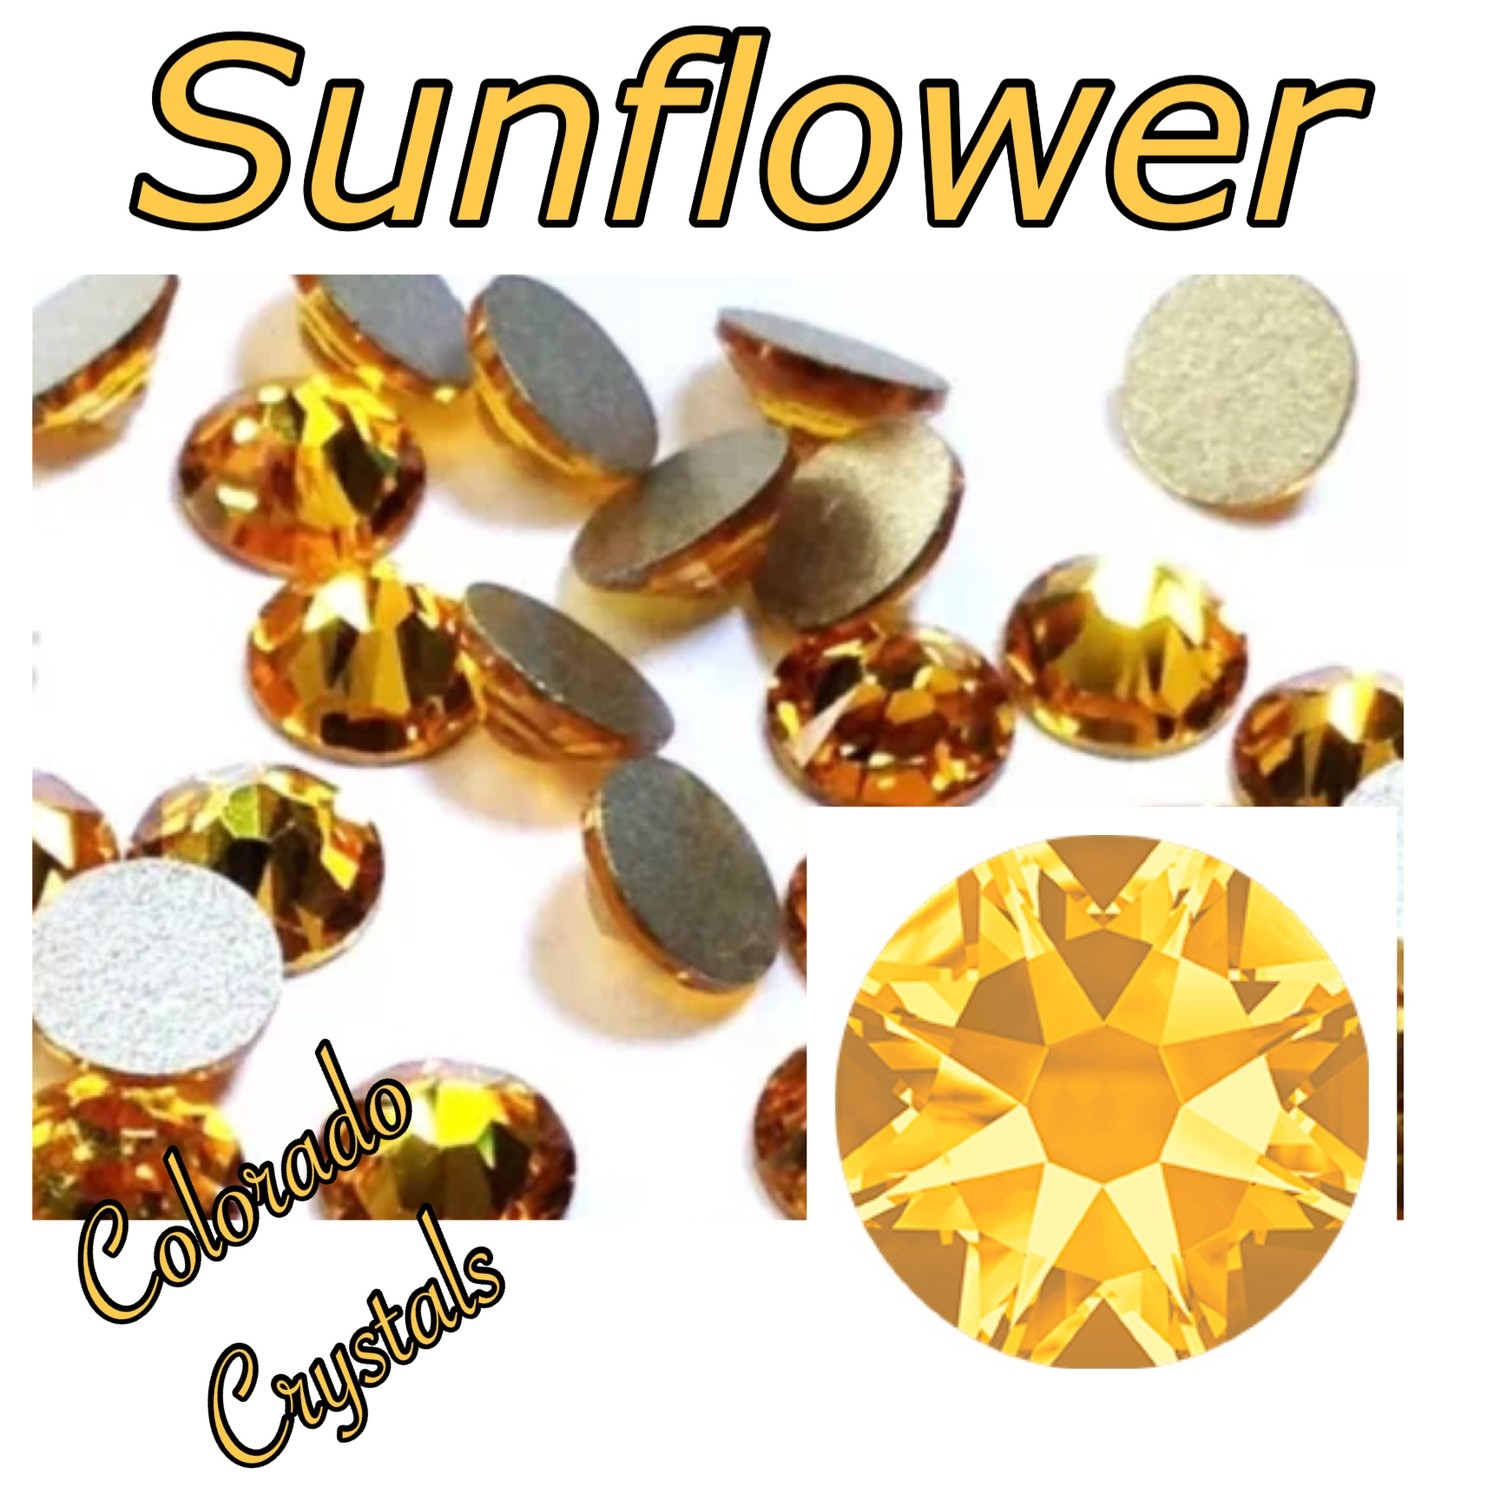 Sunflower 12ss 2088 Limited